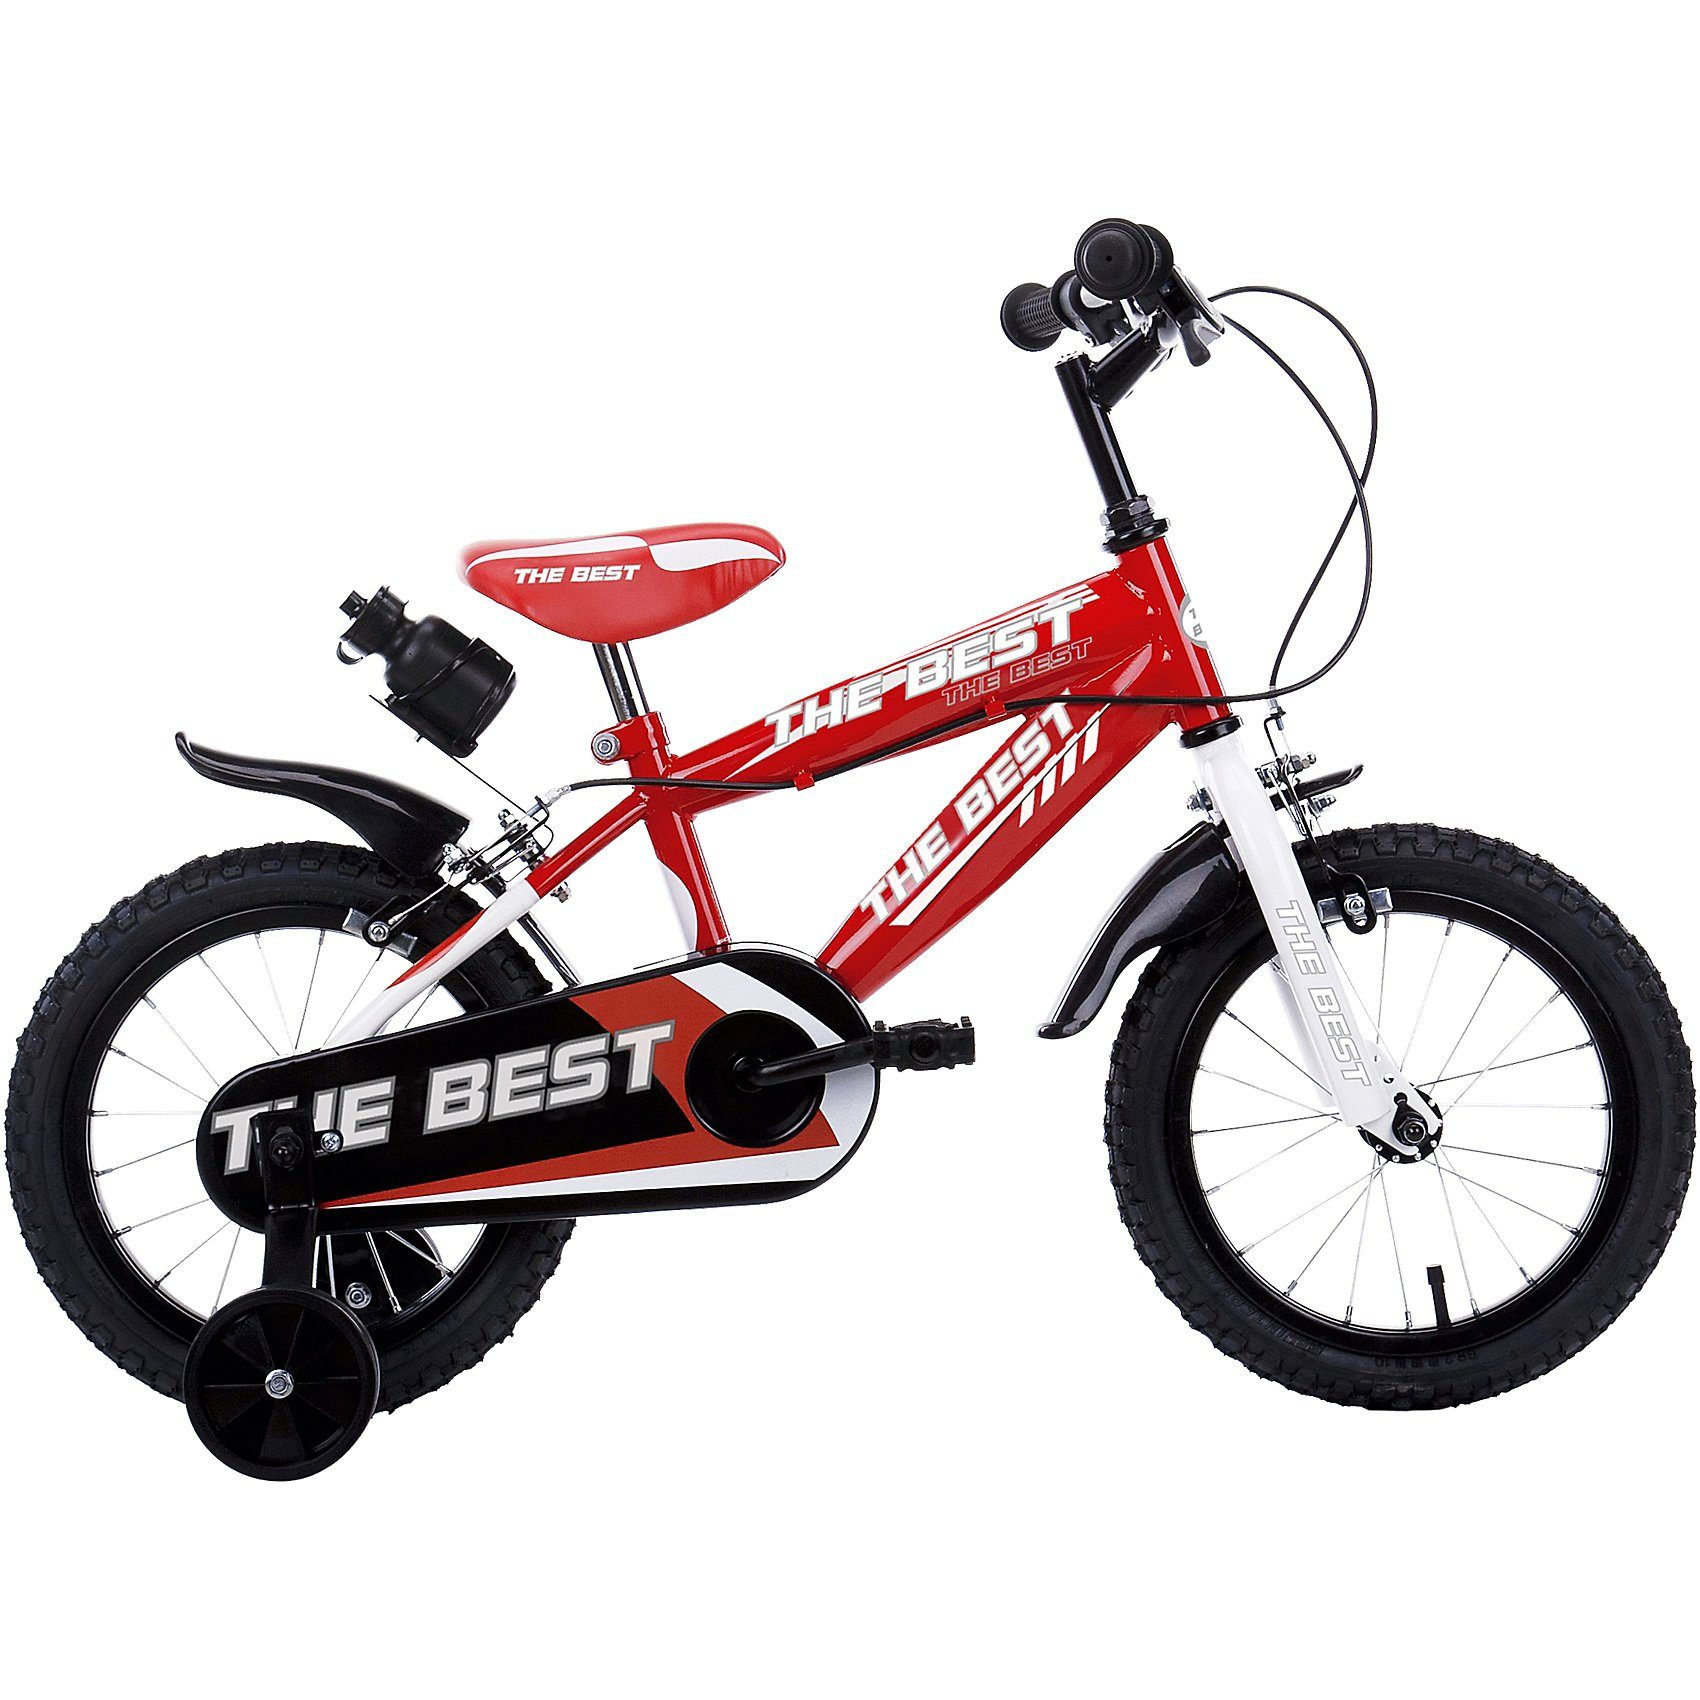 Schiano Kids Kinderfahrrad The Best, 14 Zoll